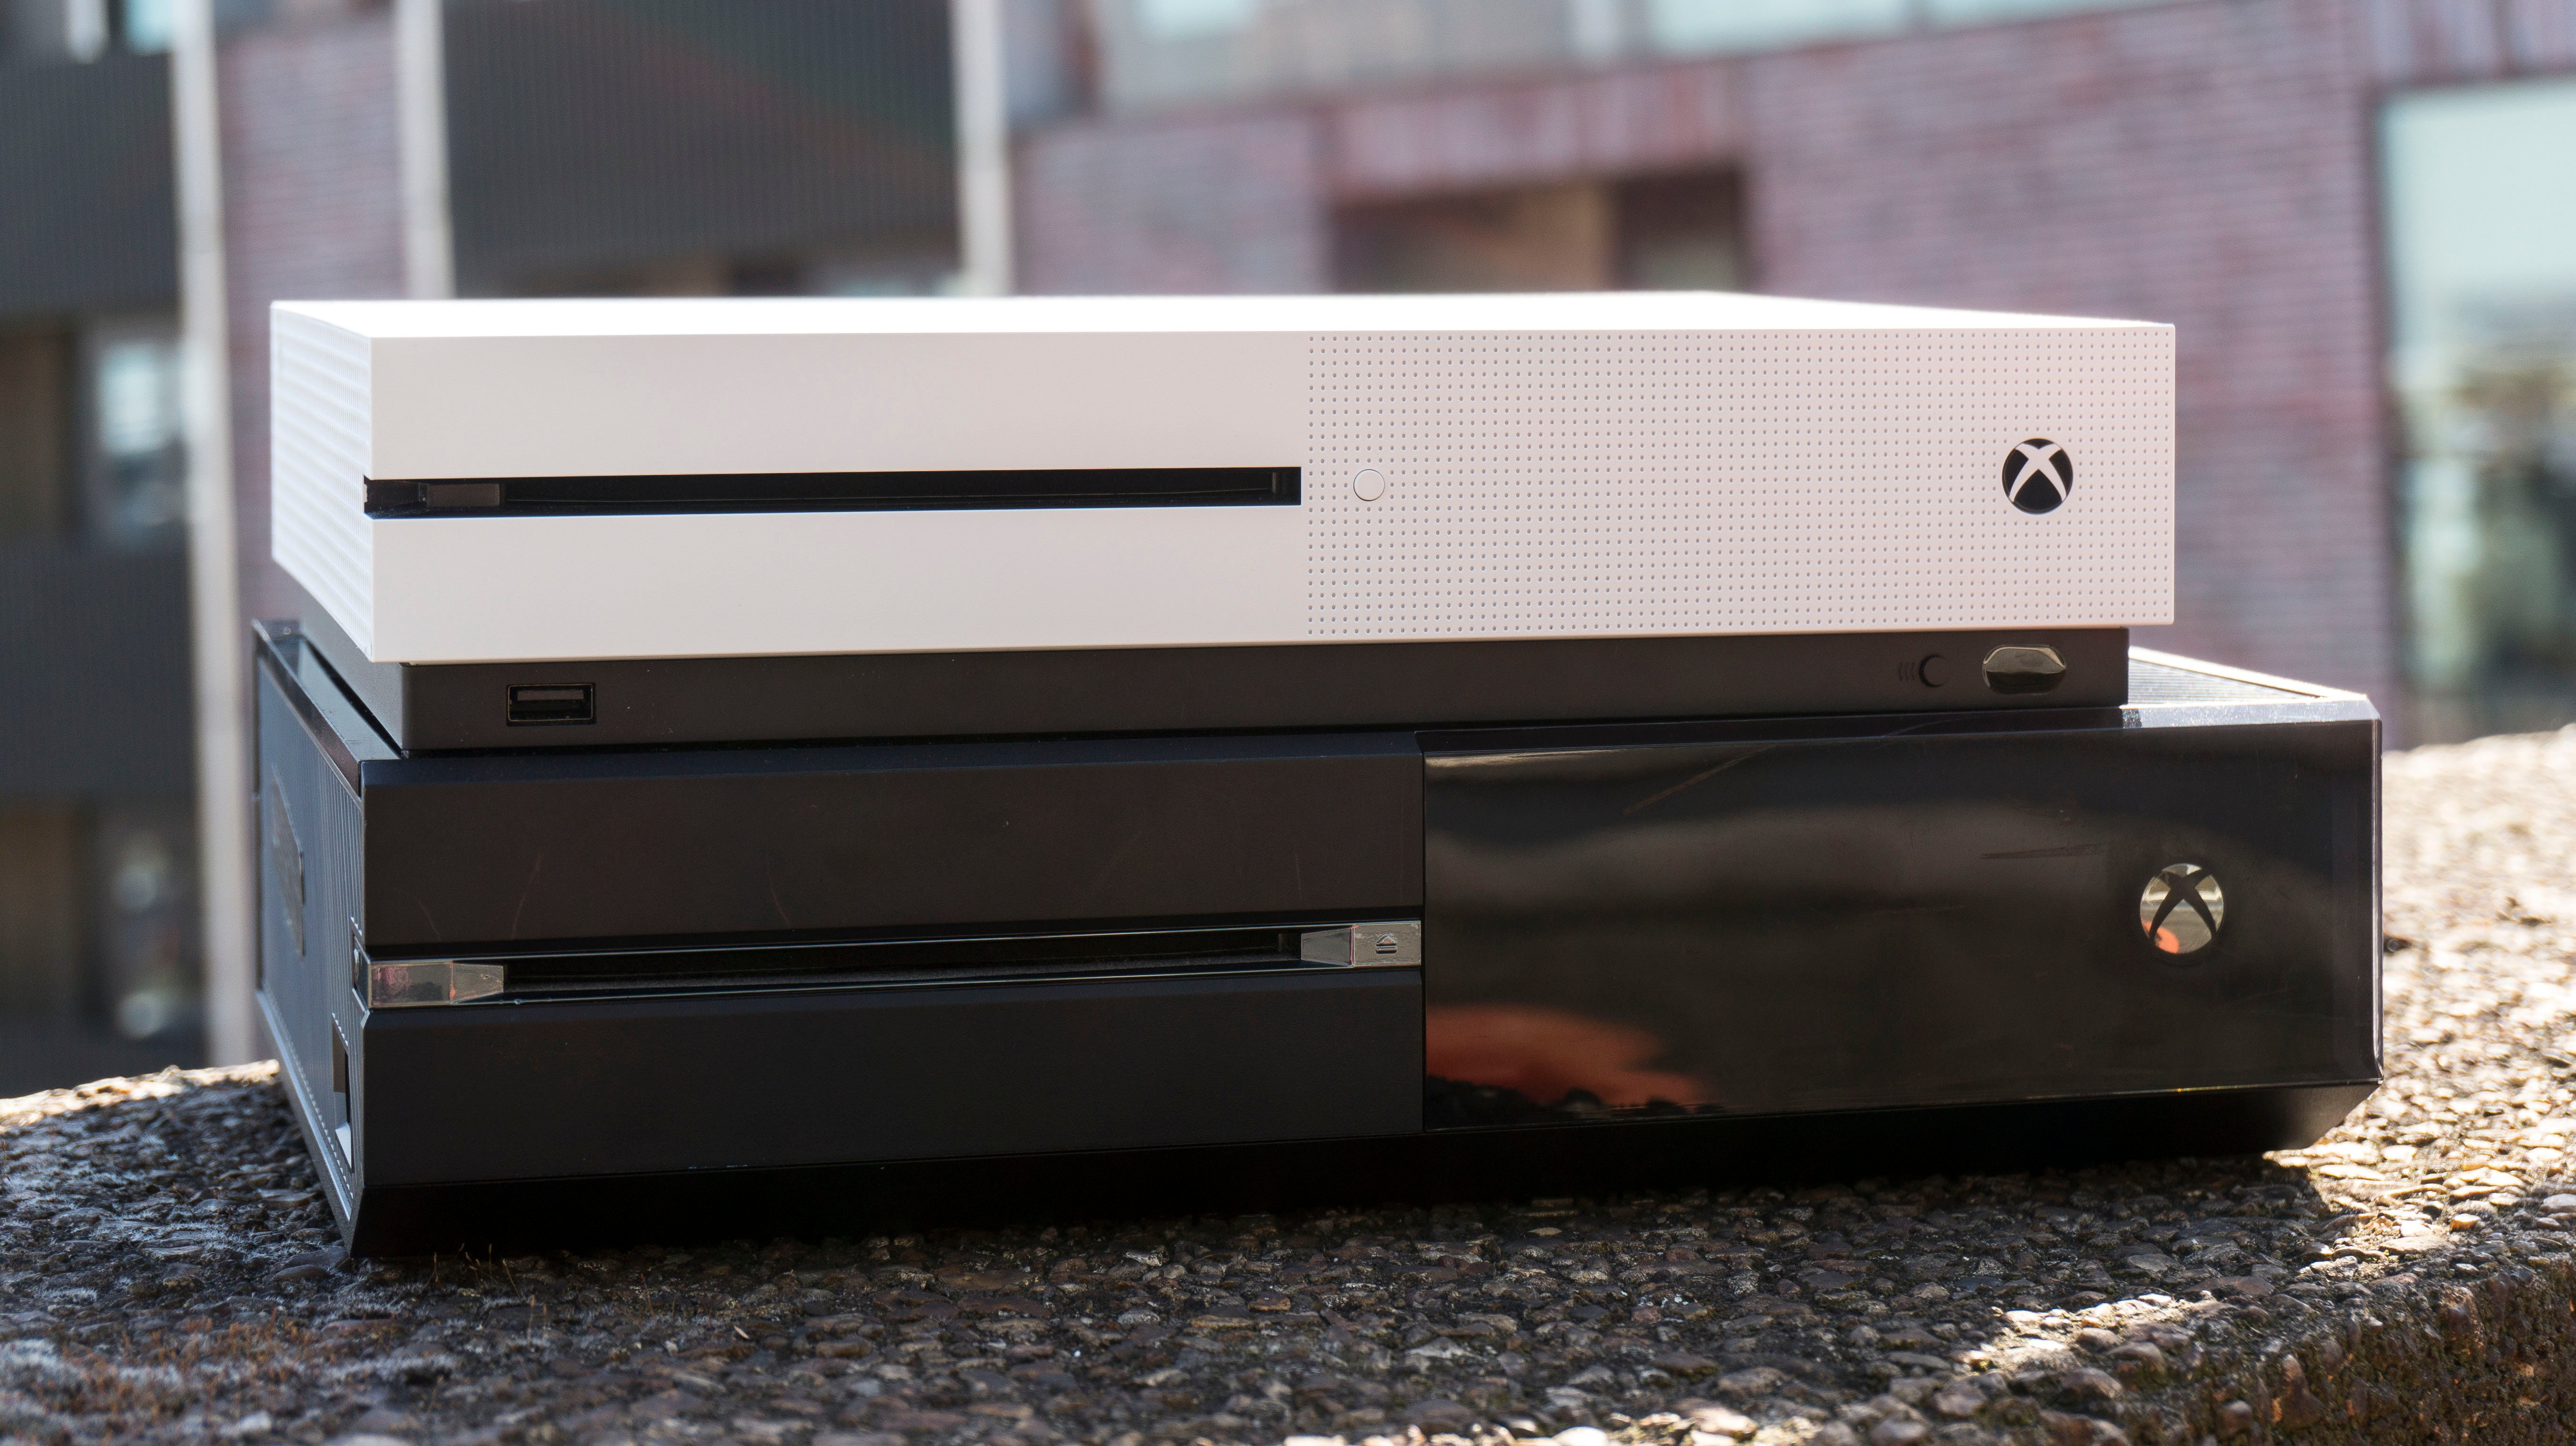 Xbox One S review: Still the console to beat in 2018